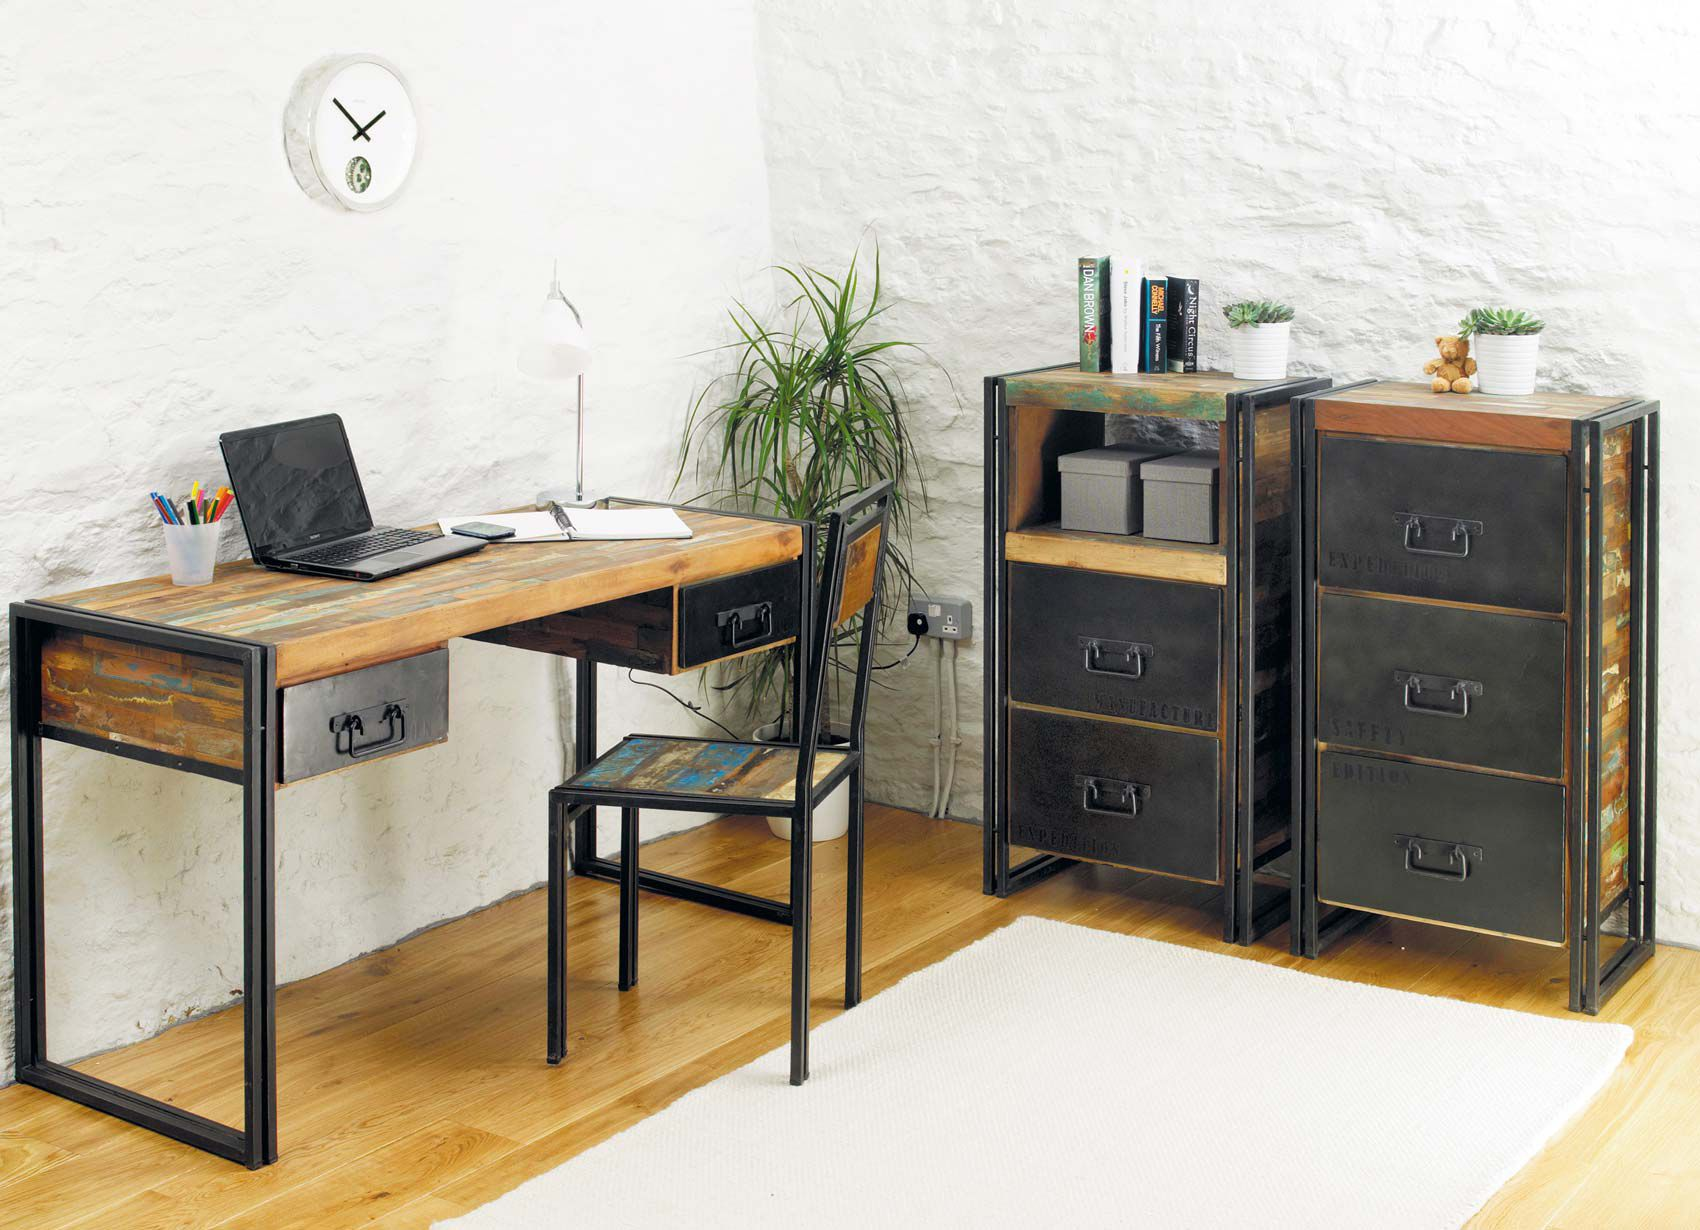 industrial chic furniture sets for office  office  pinterest  - industrial chic furniture sets for office